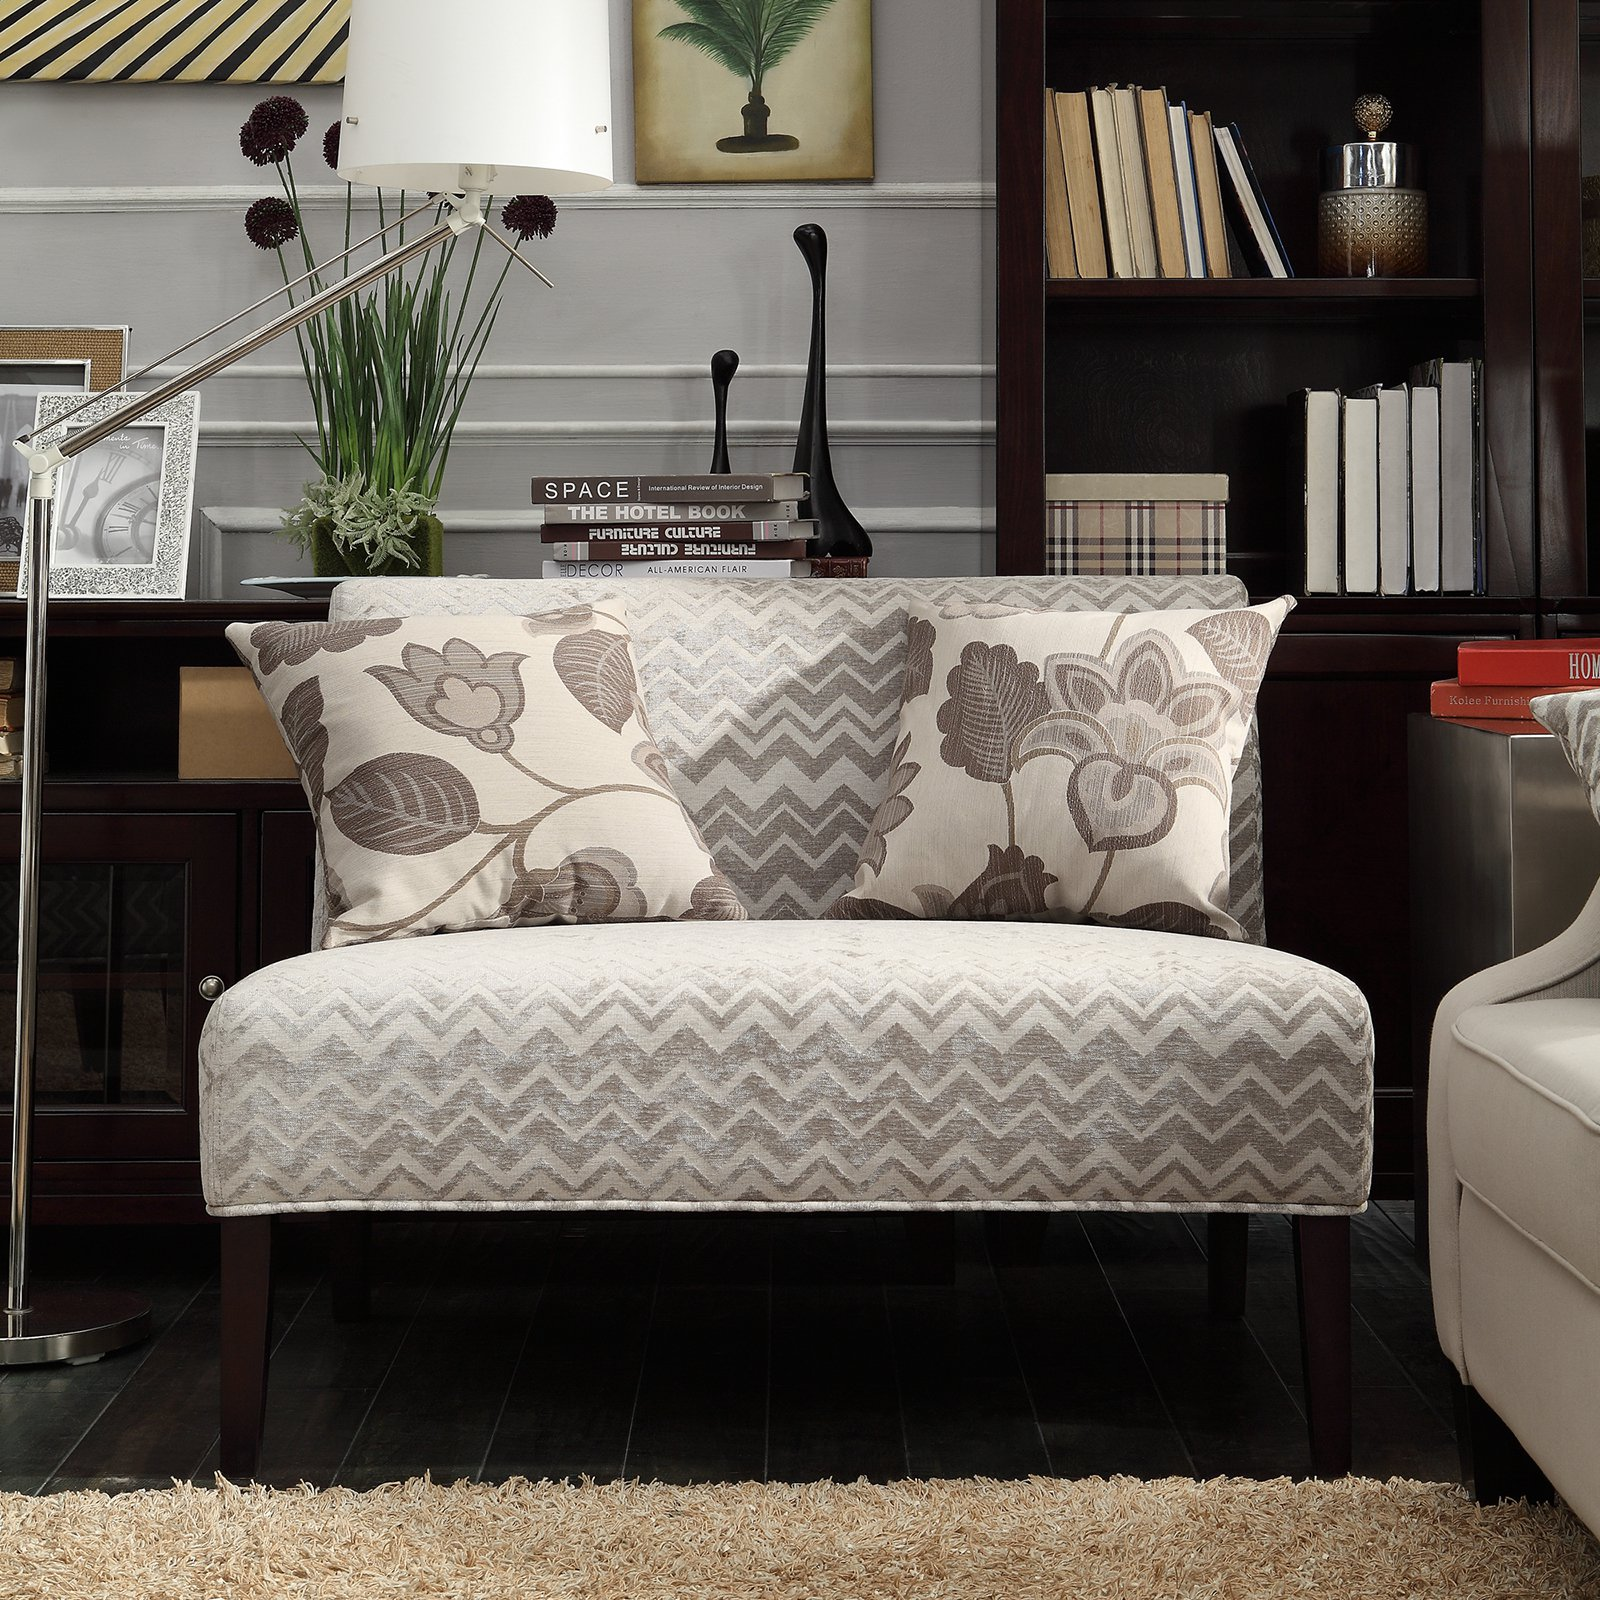 Weston Home Gray Chevron Print Fabric Loveseat - Rich Espresso